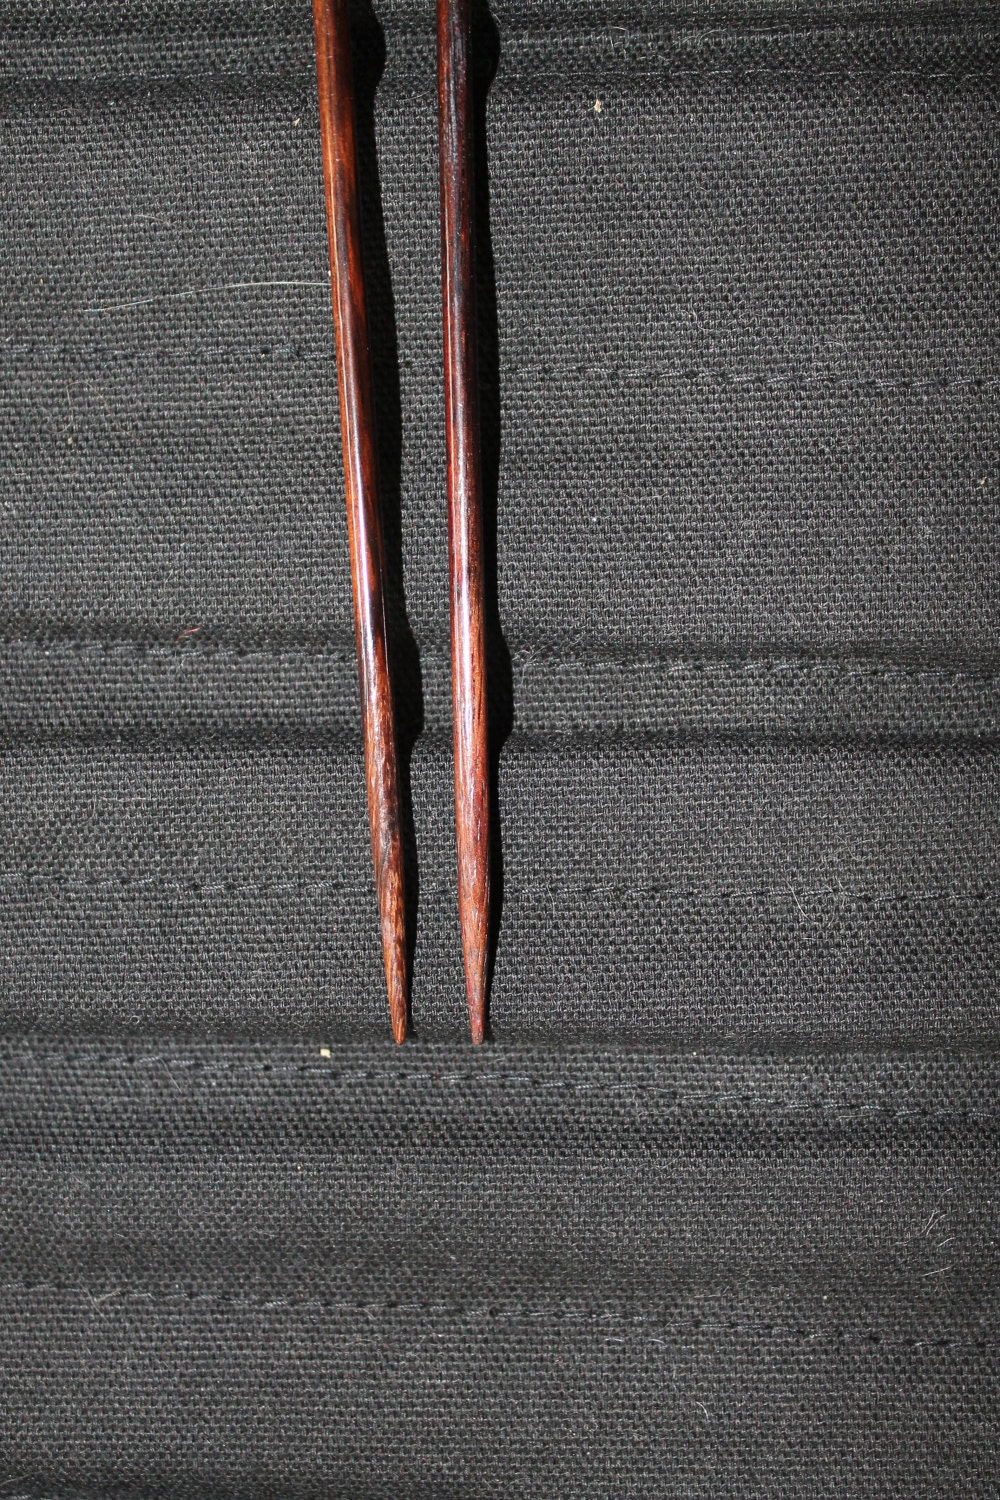 worn wooden tips